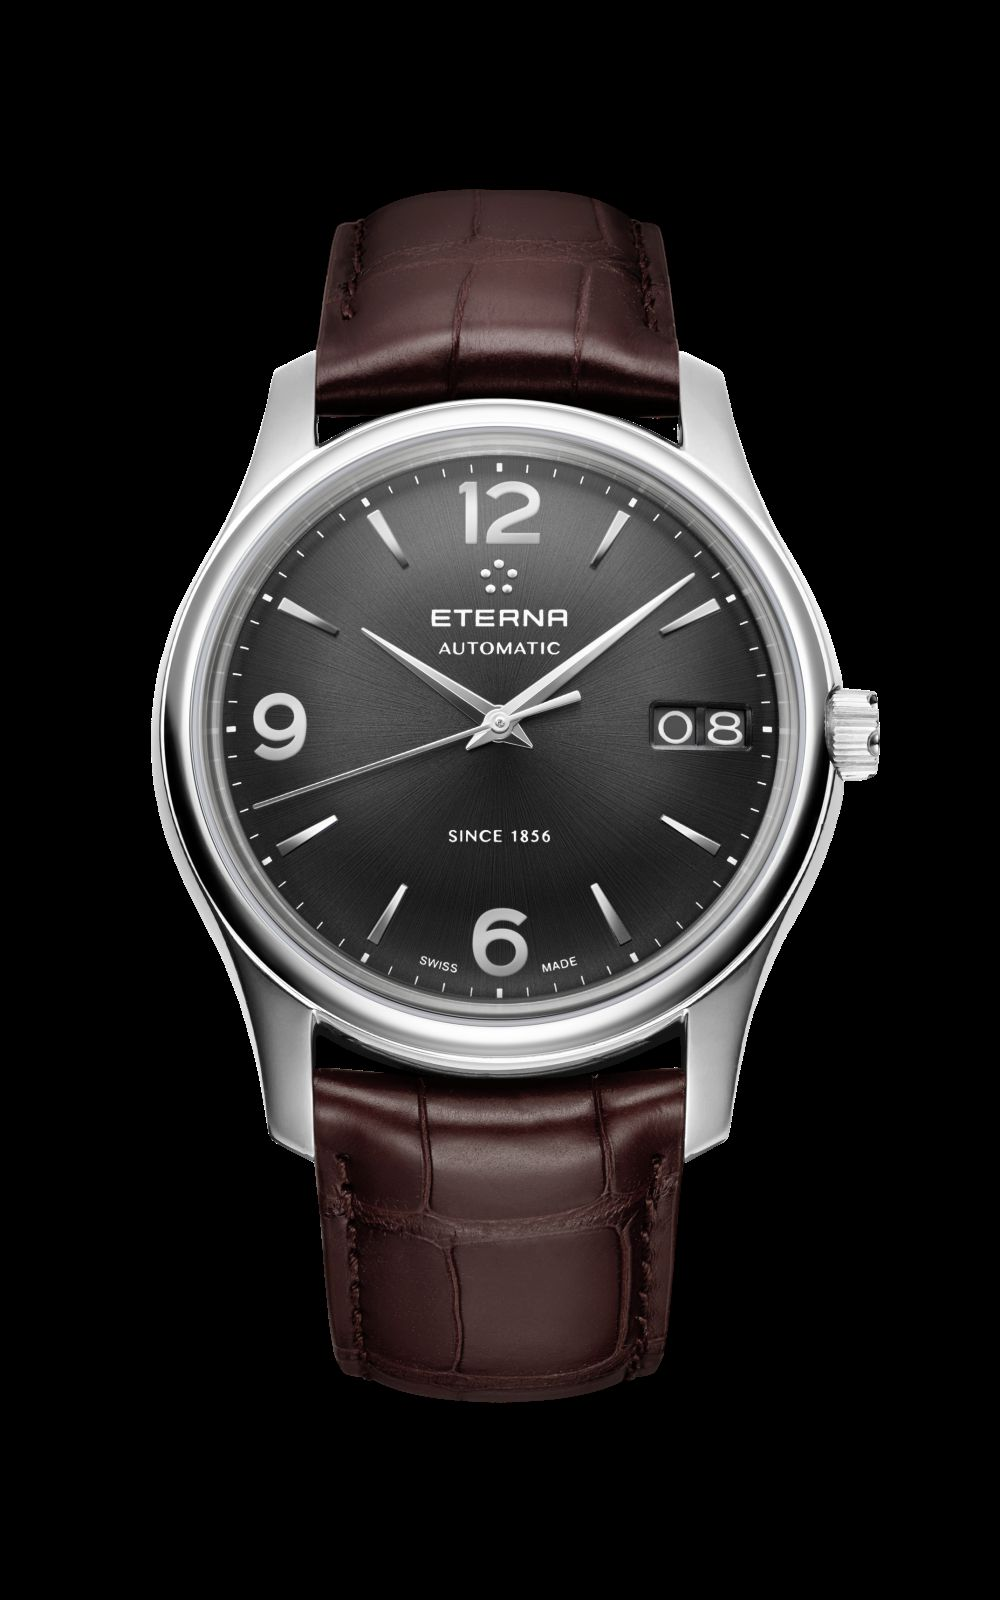 Eterna-Granges-1856-Watch-4.jpg